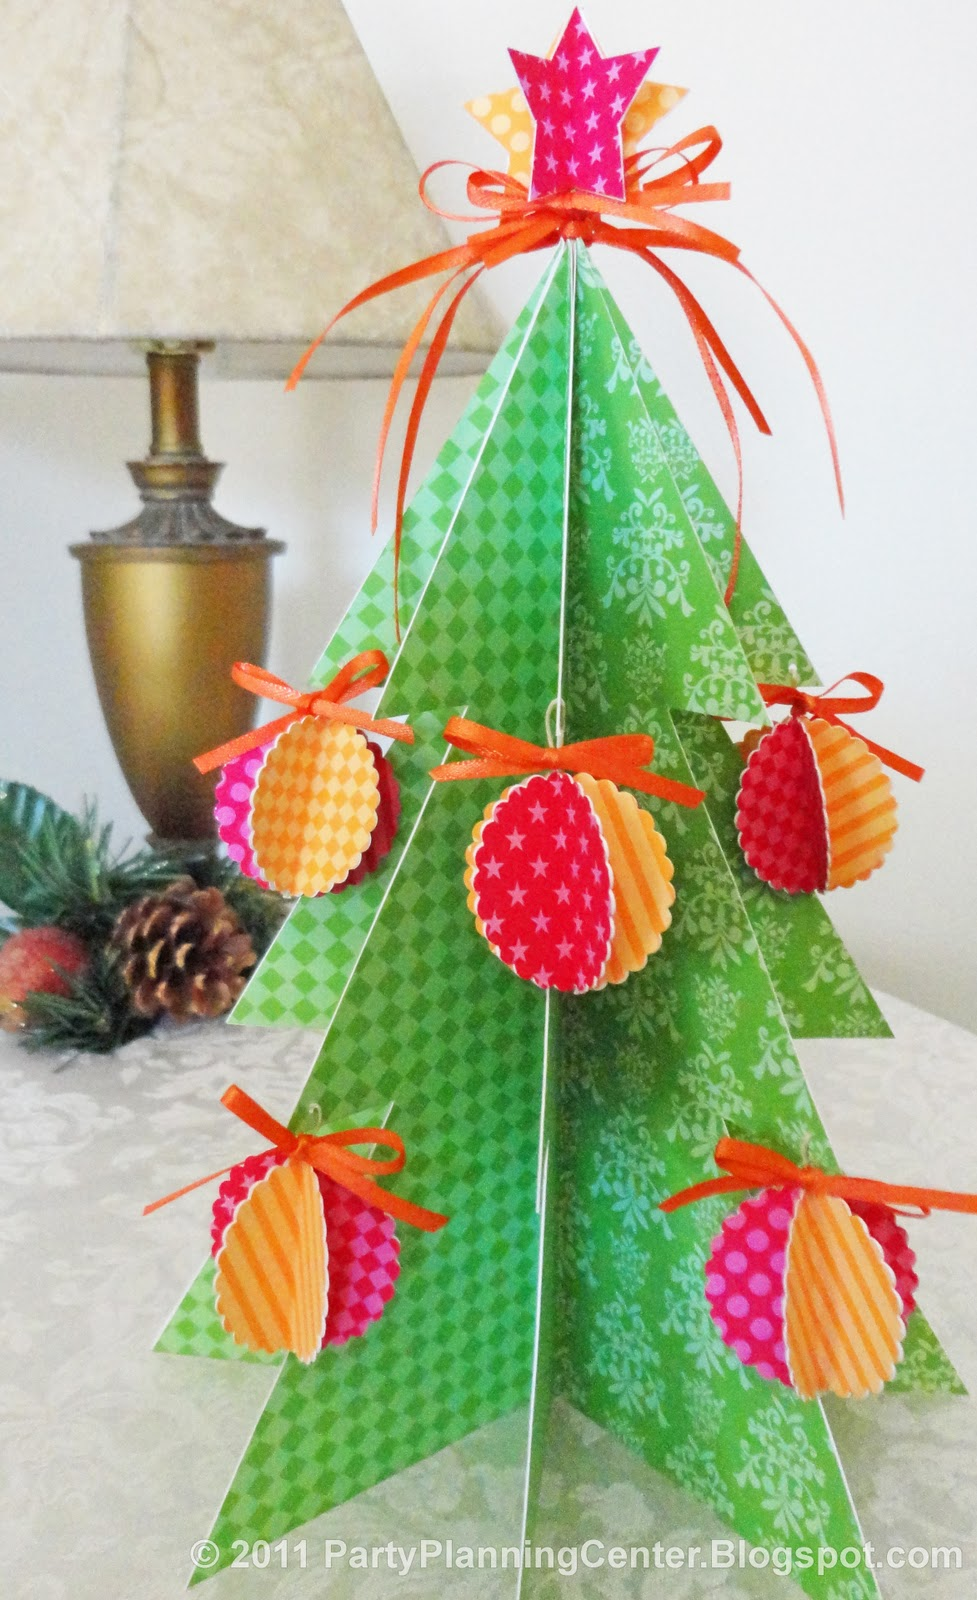 Decorate Christmas Tree On Paper : Party planning center free printable paper christmas tree